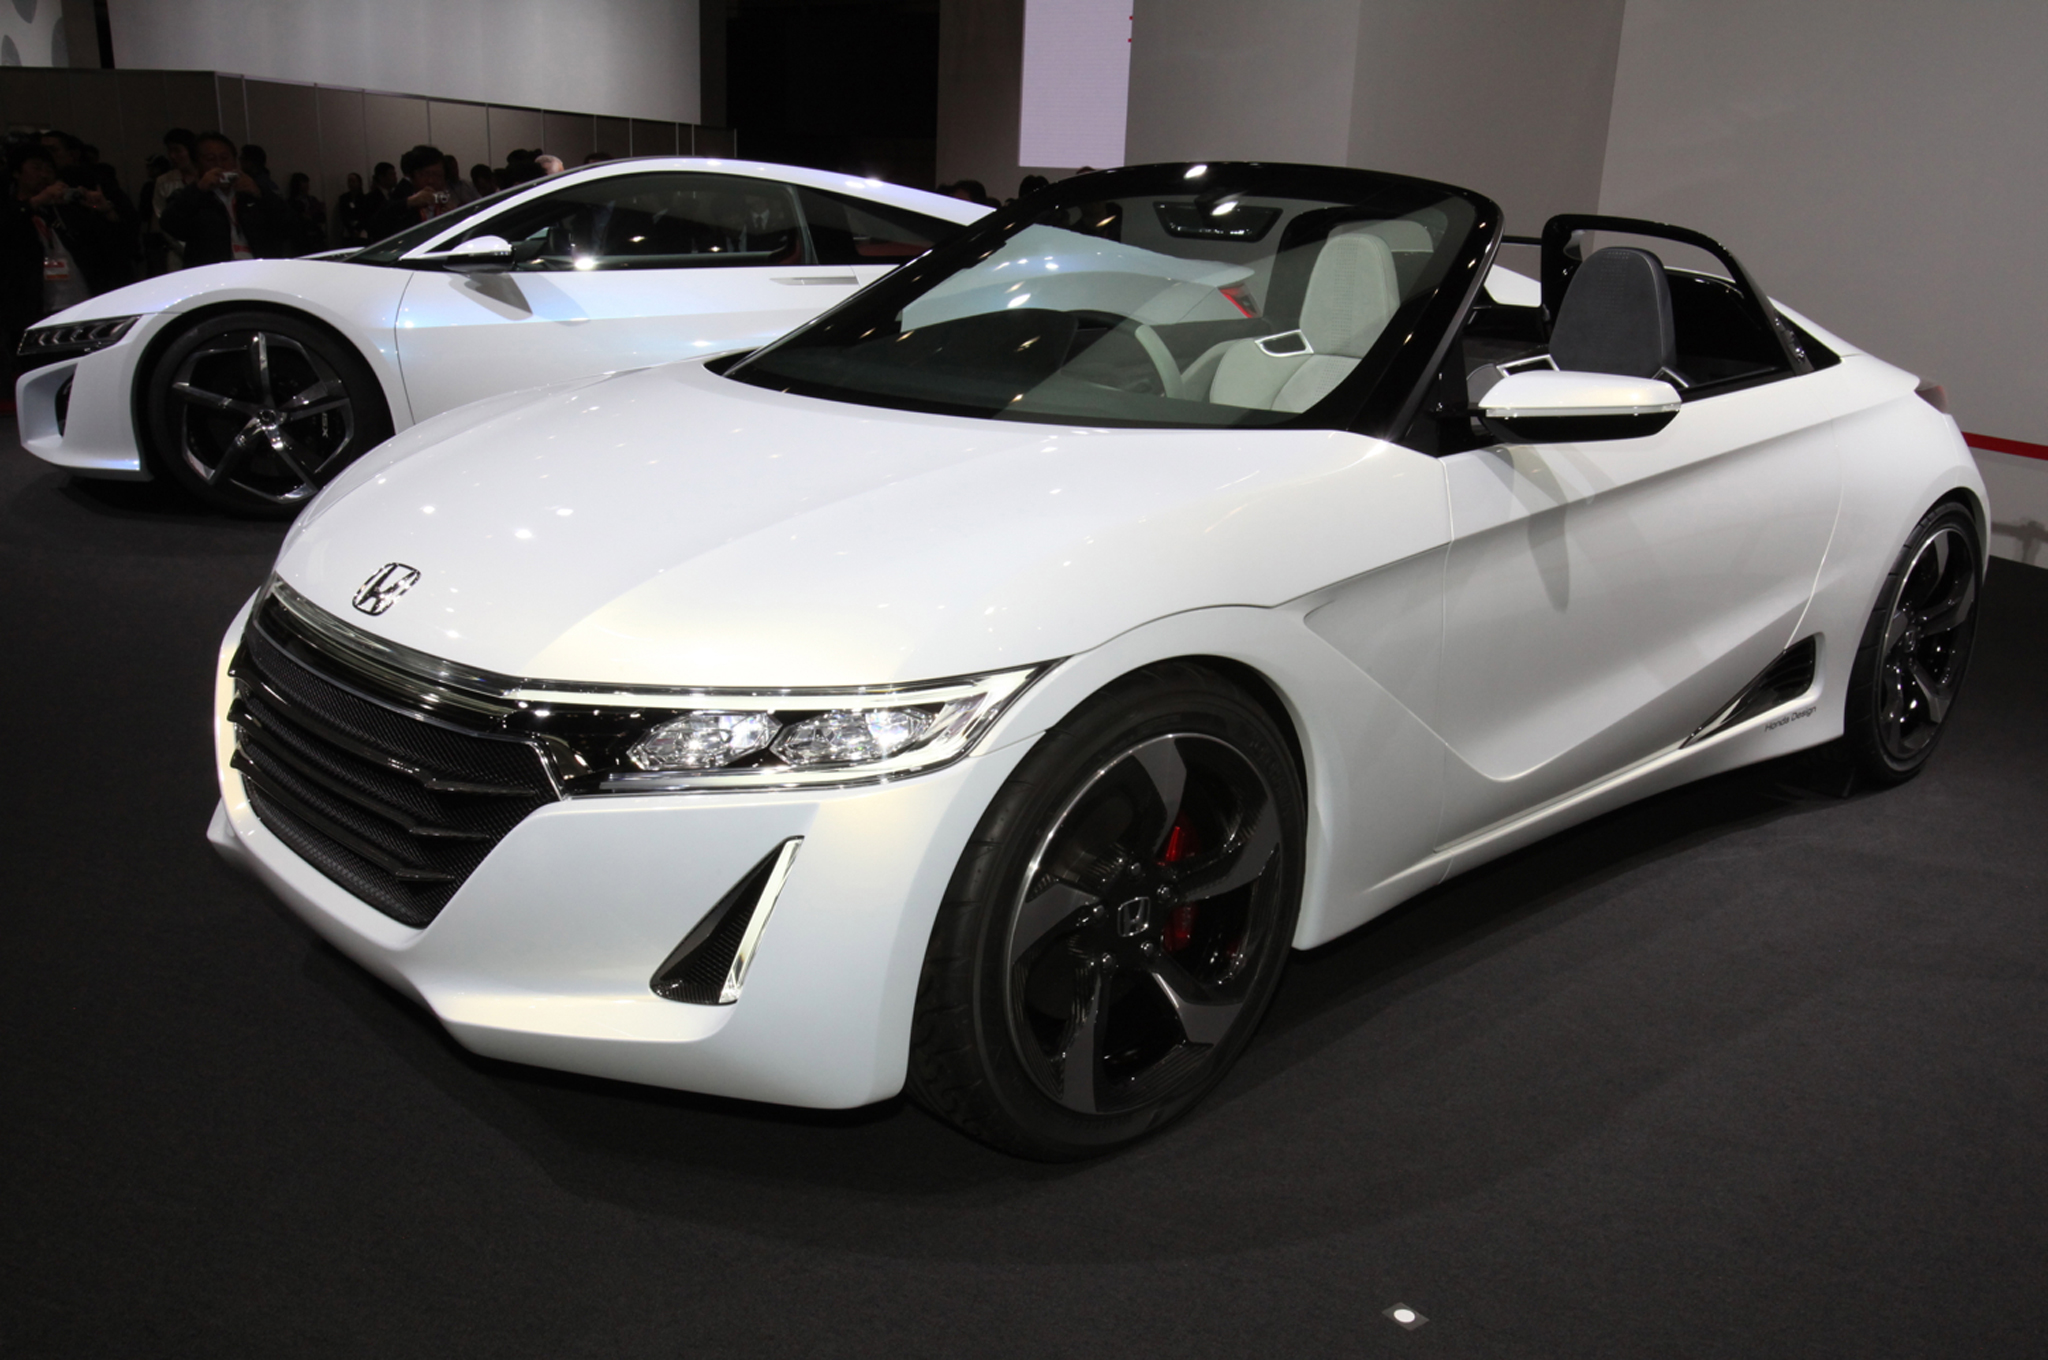 American Honda CEO Wants S660 Concept In US